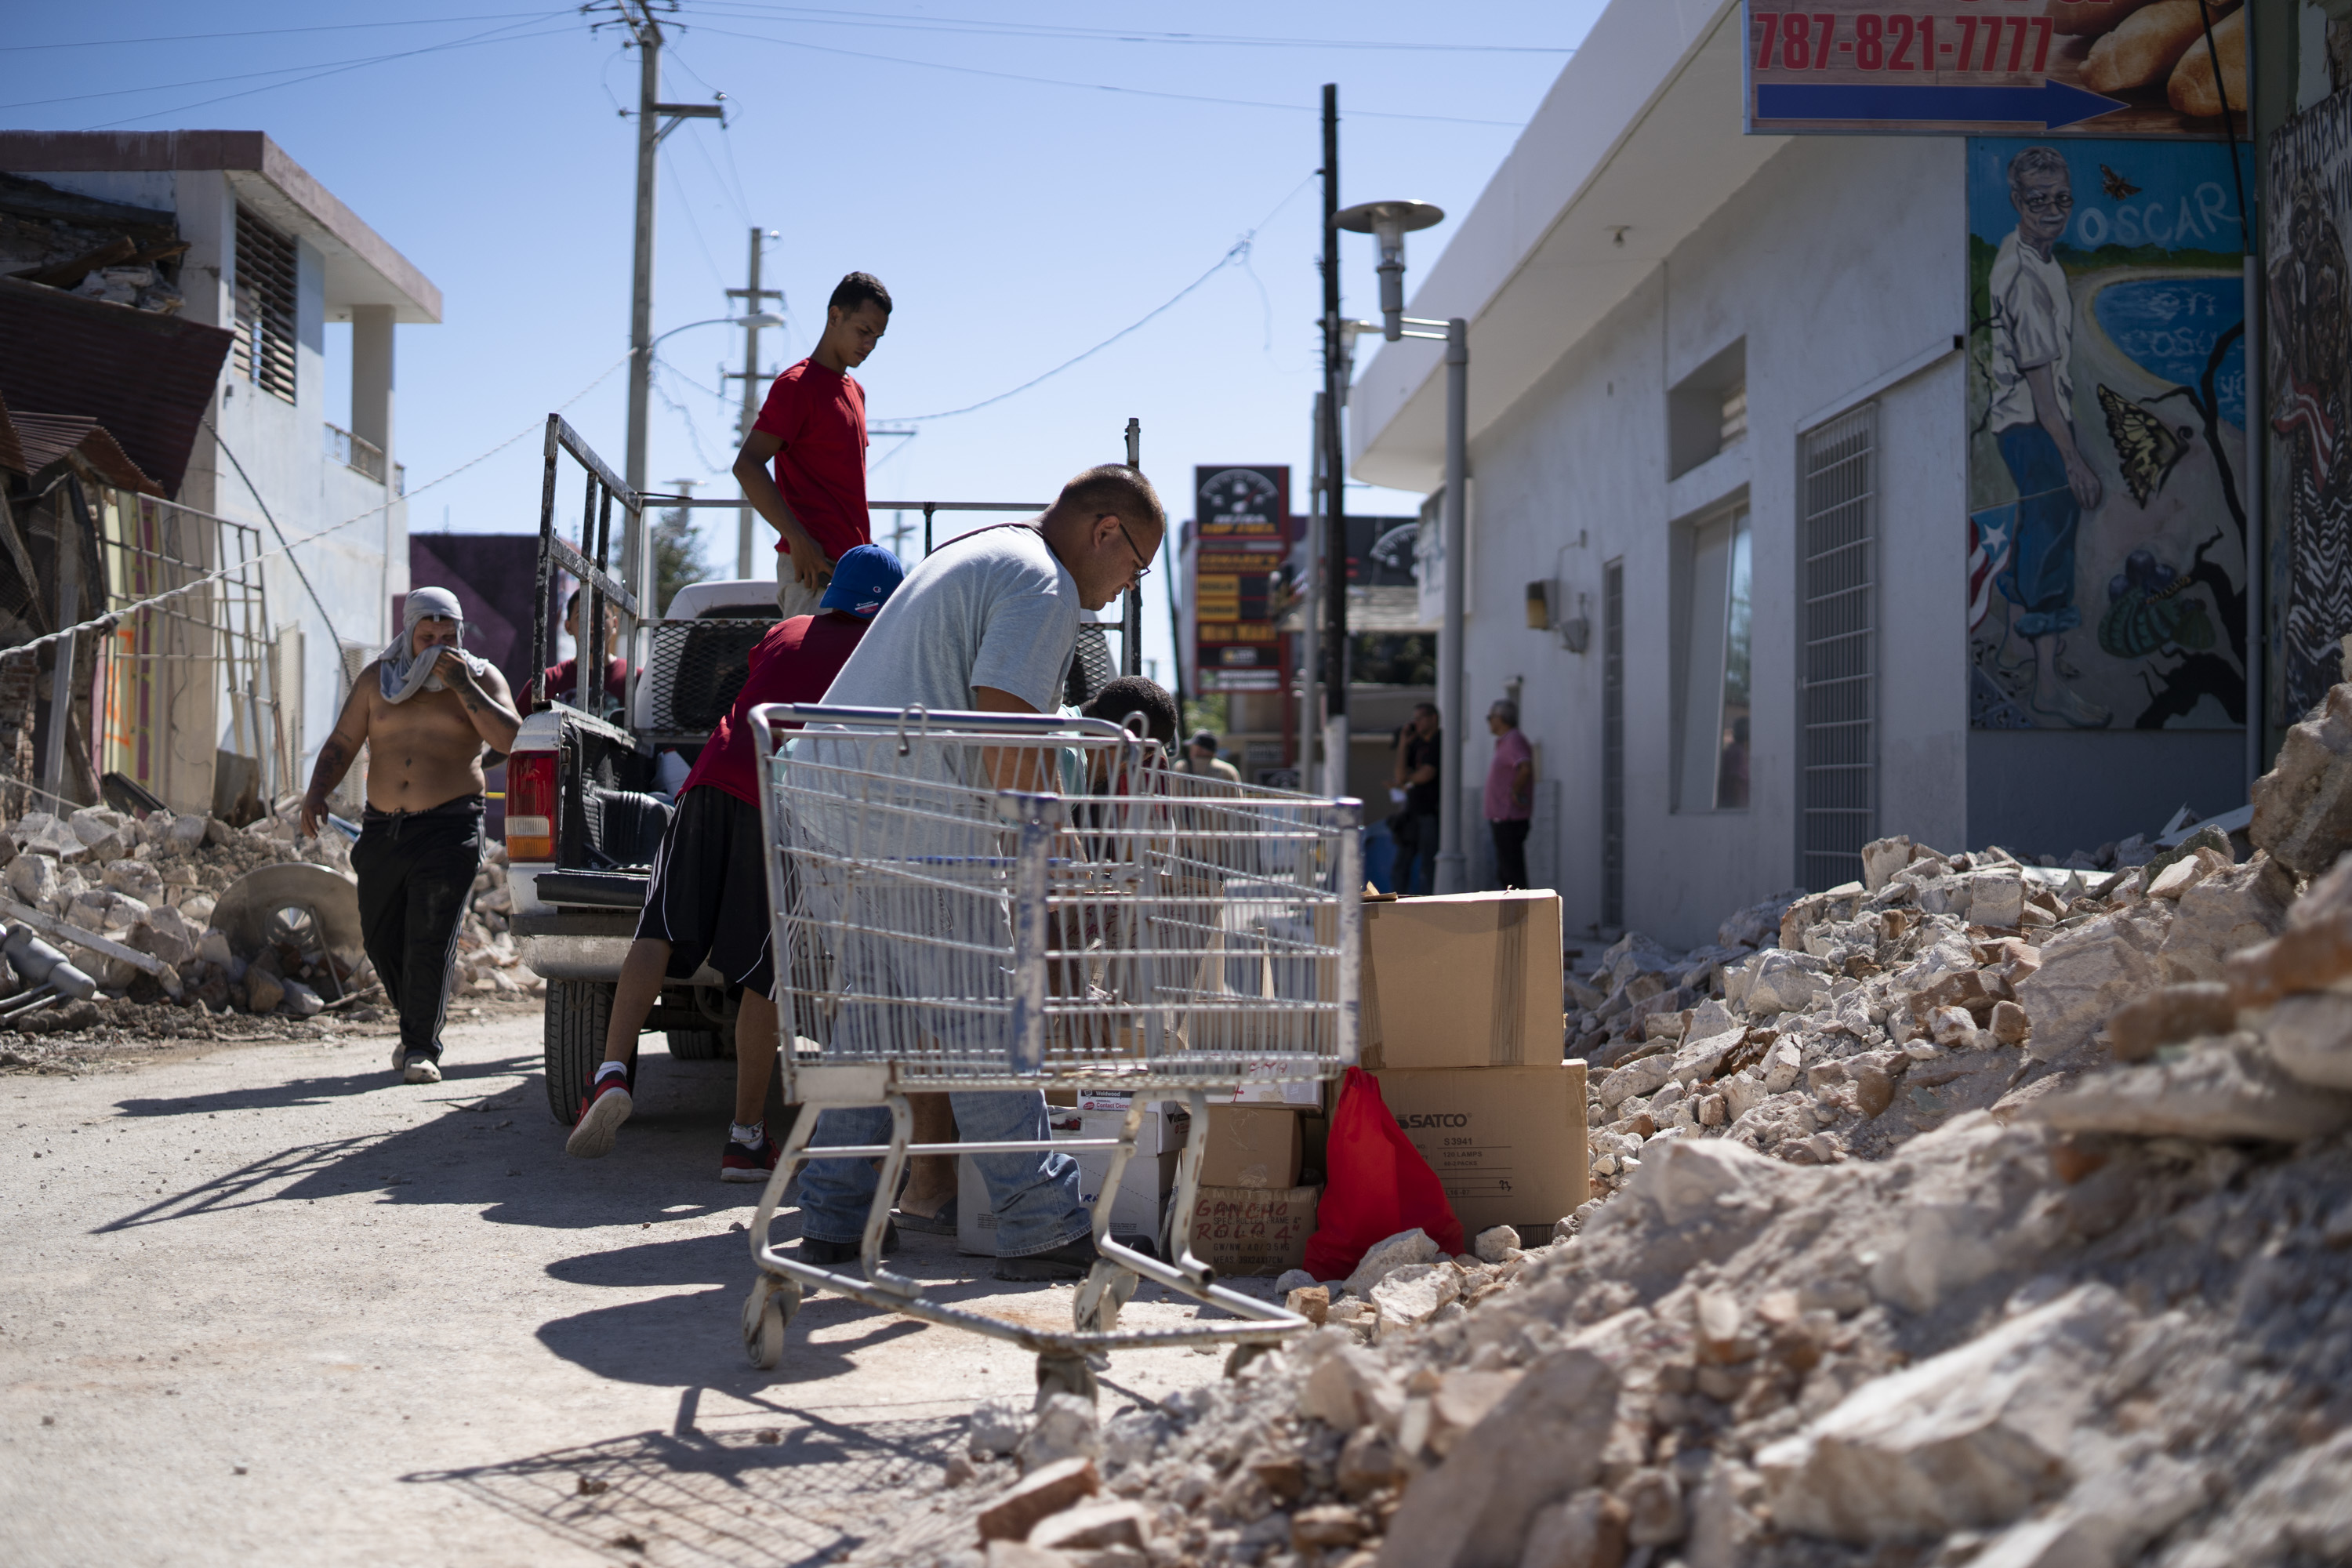 How to Help Puerto Rico Following Its Most Devastating Earthquake in a Century